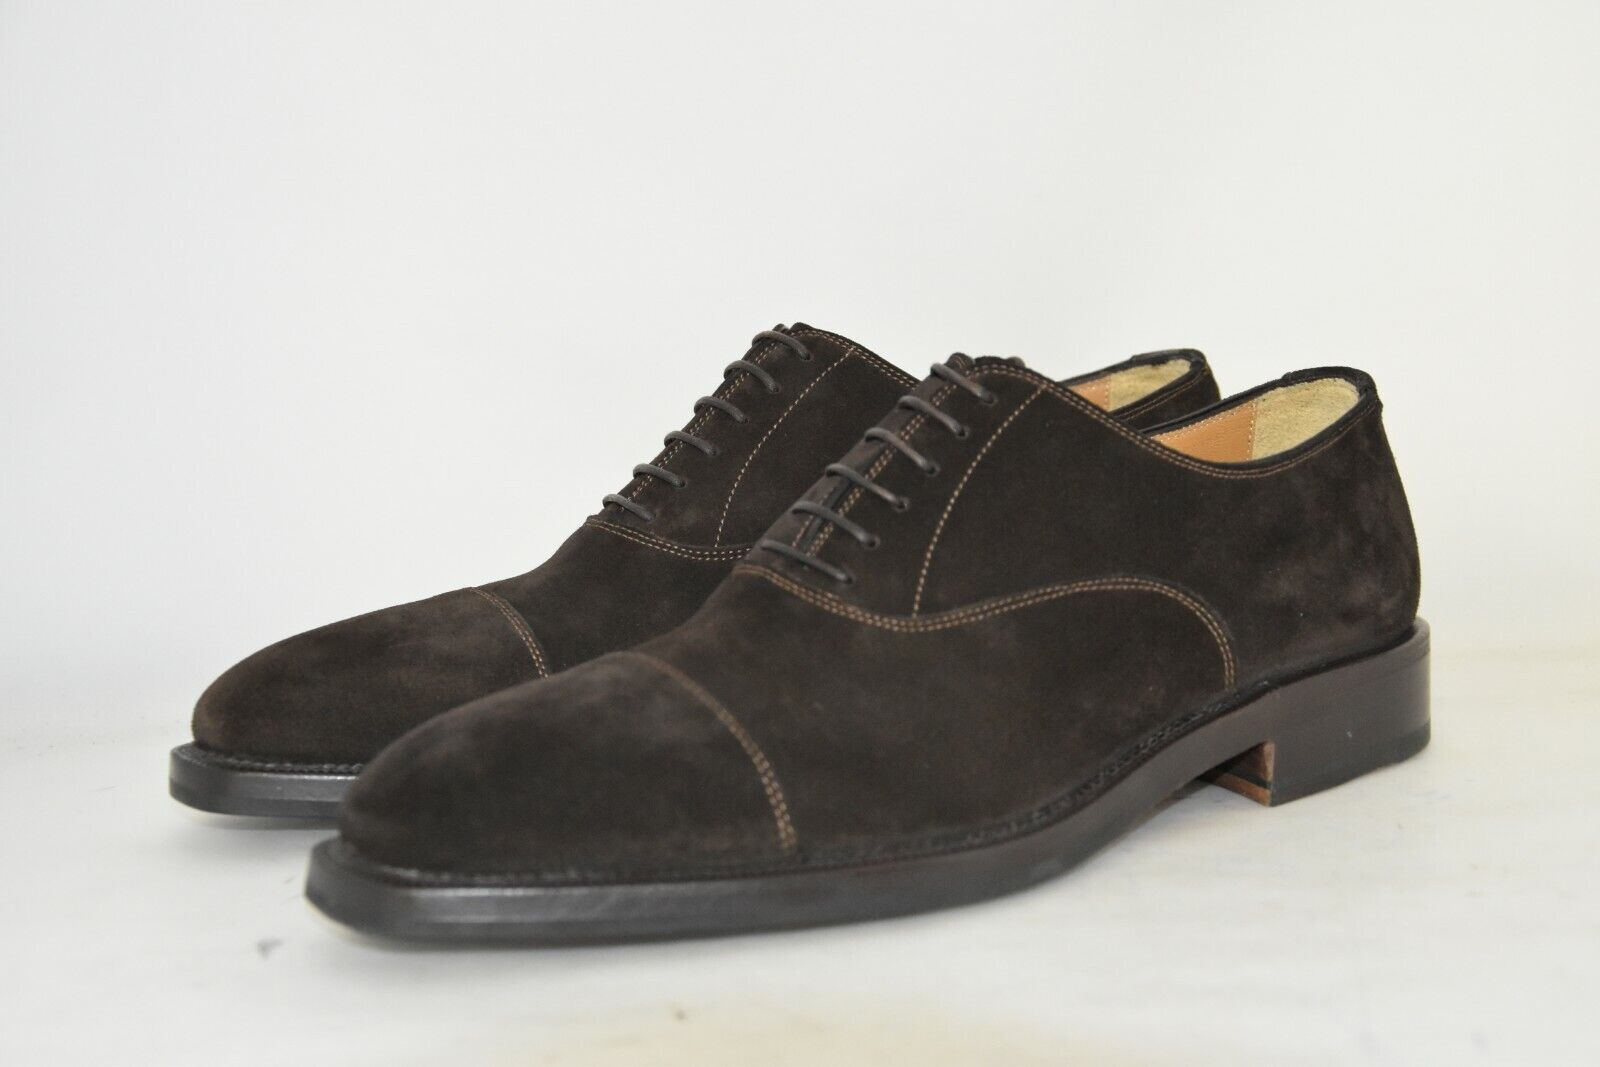 MAN-8eu-9us-OXFORD CAPTOE-FRANCESINA-DK marron SUEDE-CAMOSCIO marron-LEATHERSOLE